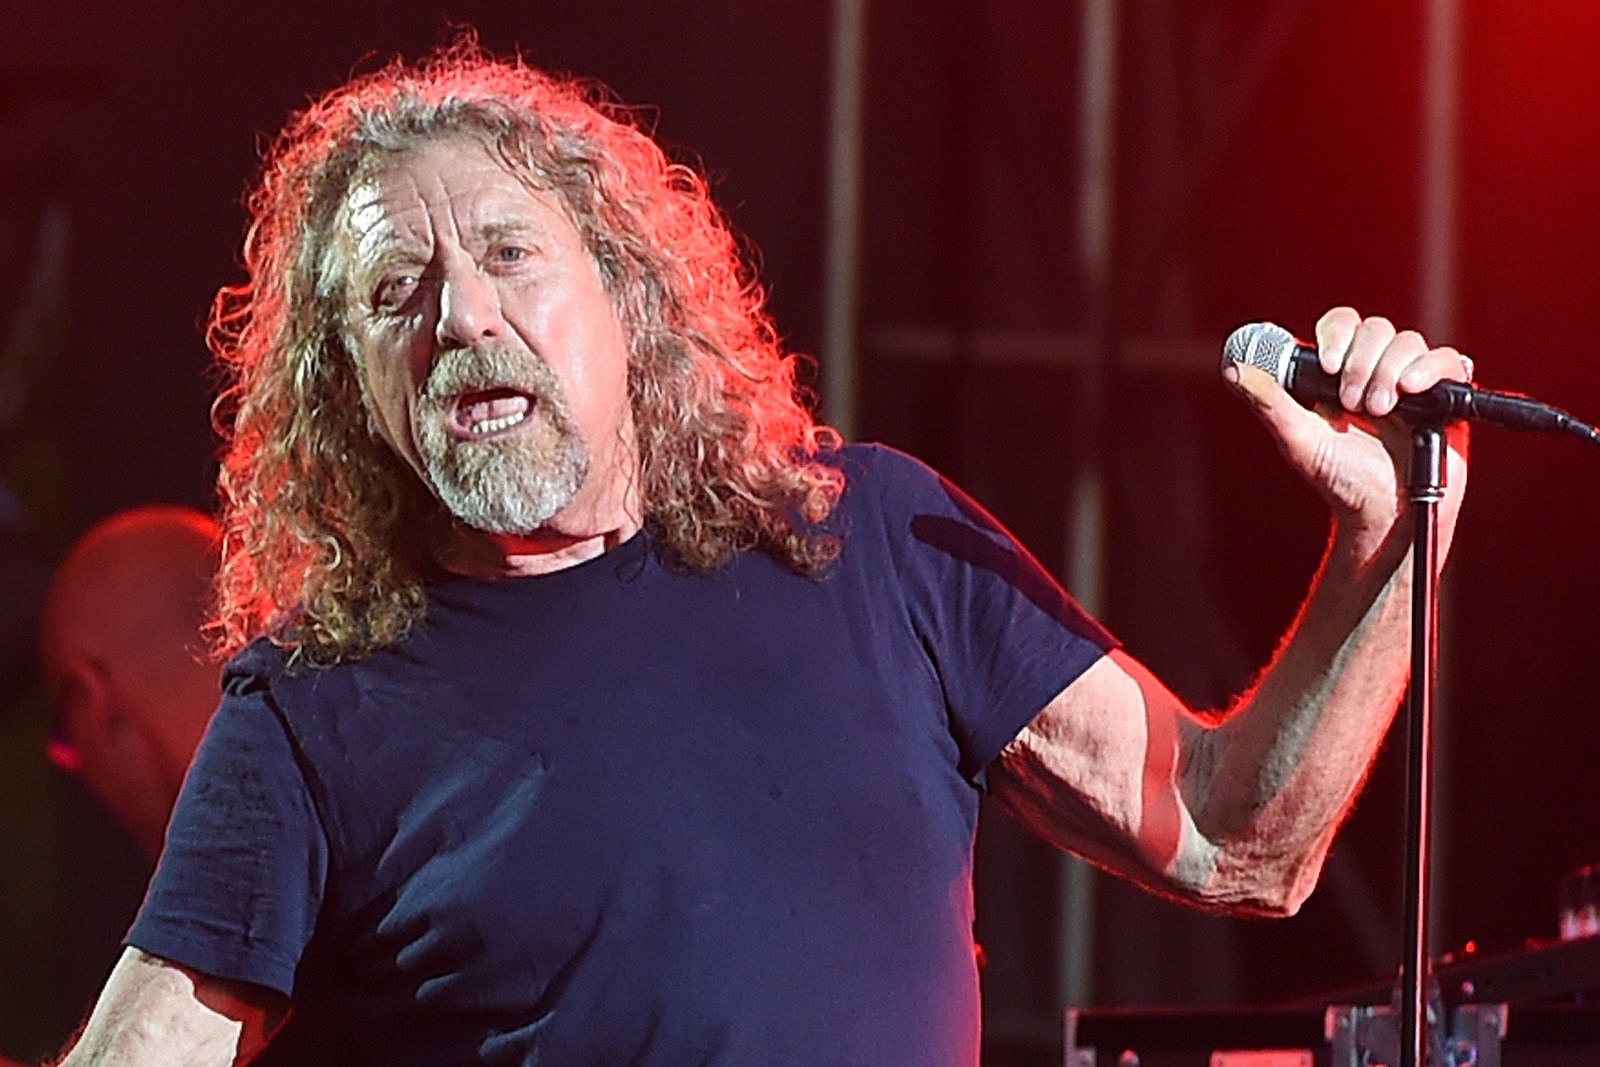 Robert Plant Announces New U.S. Tour Dates